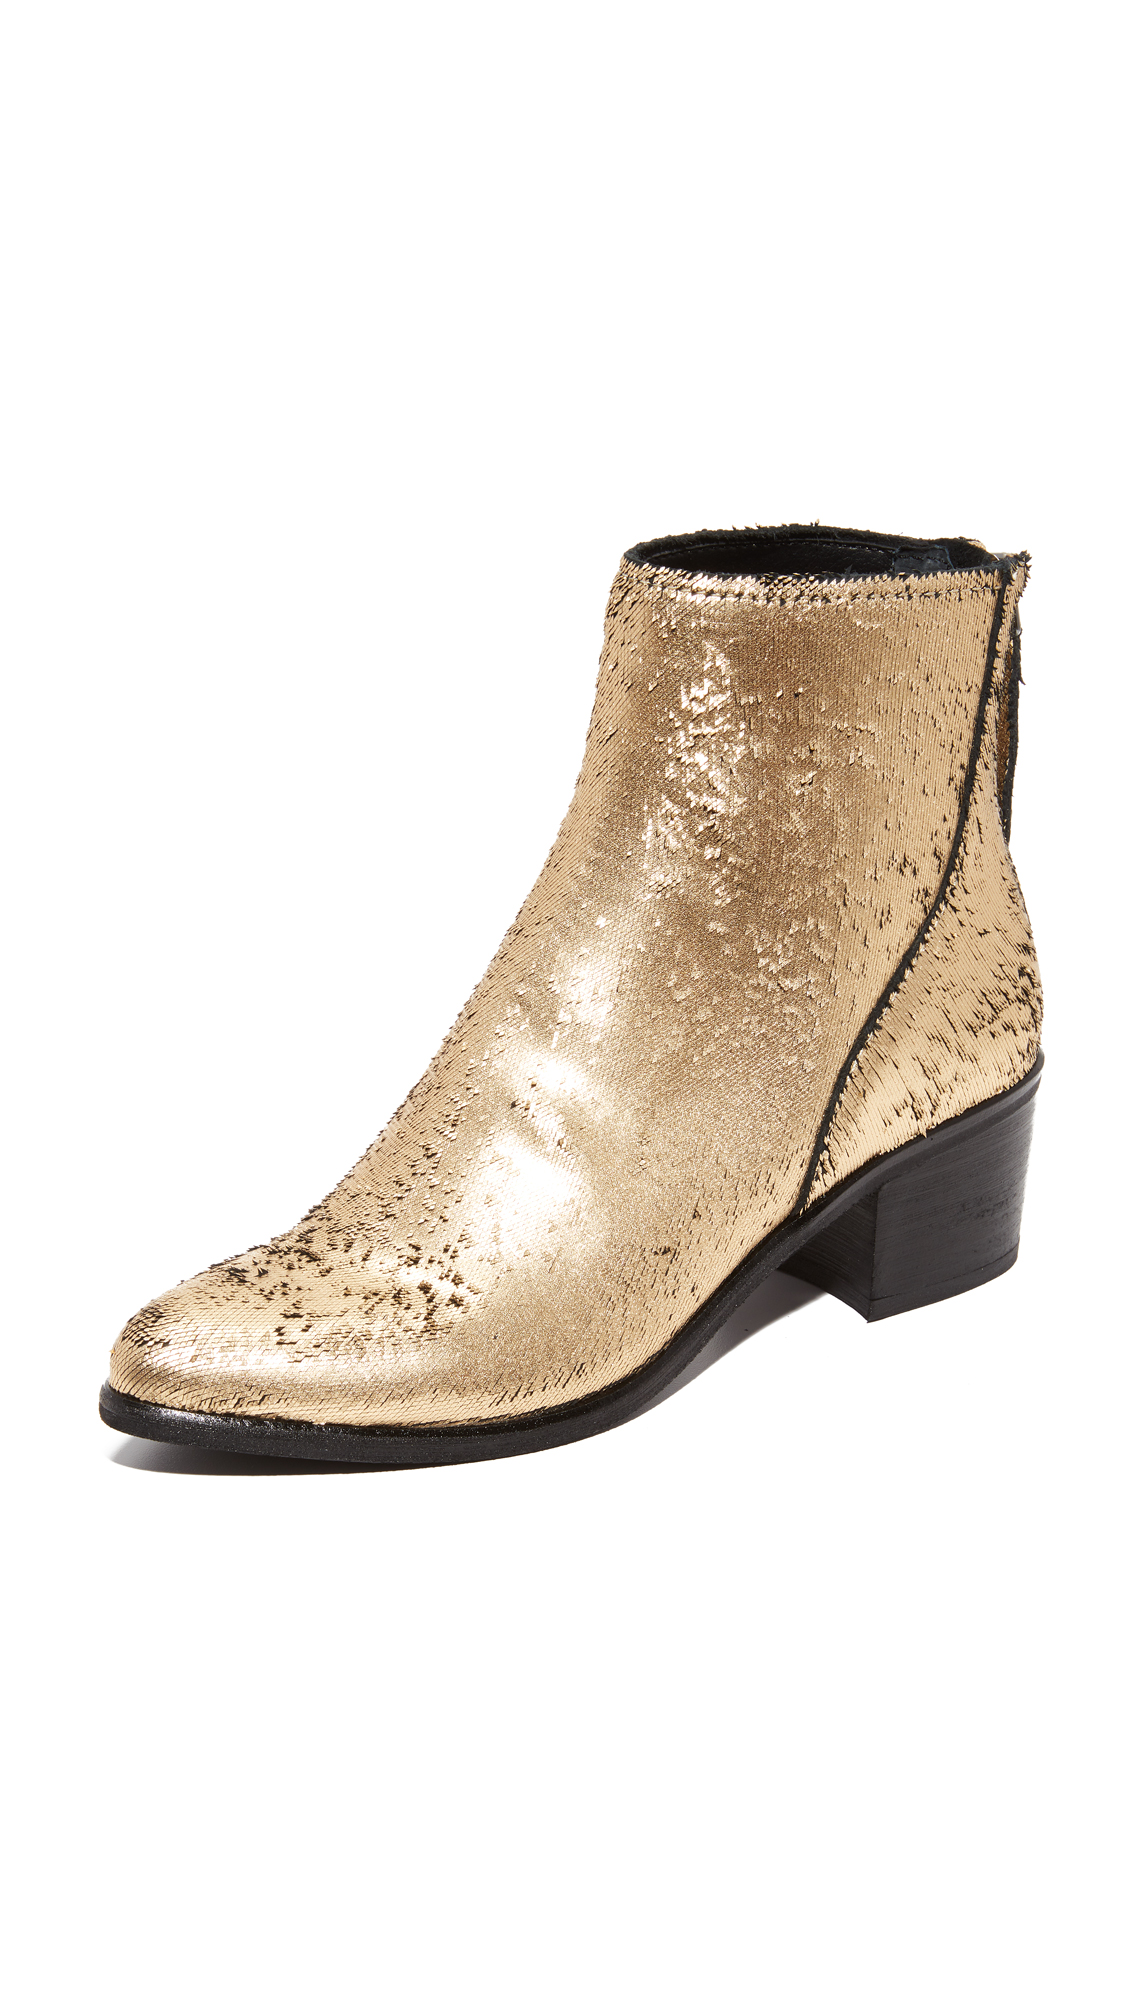 Dolce Vita Cassius Ankle Booties - Gold